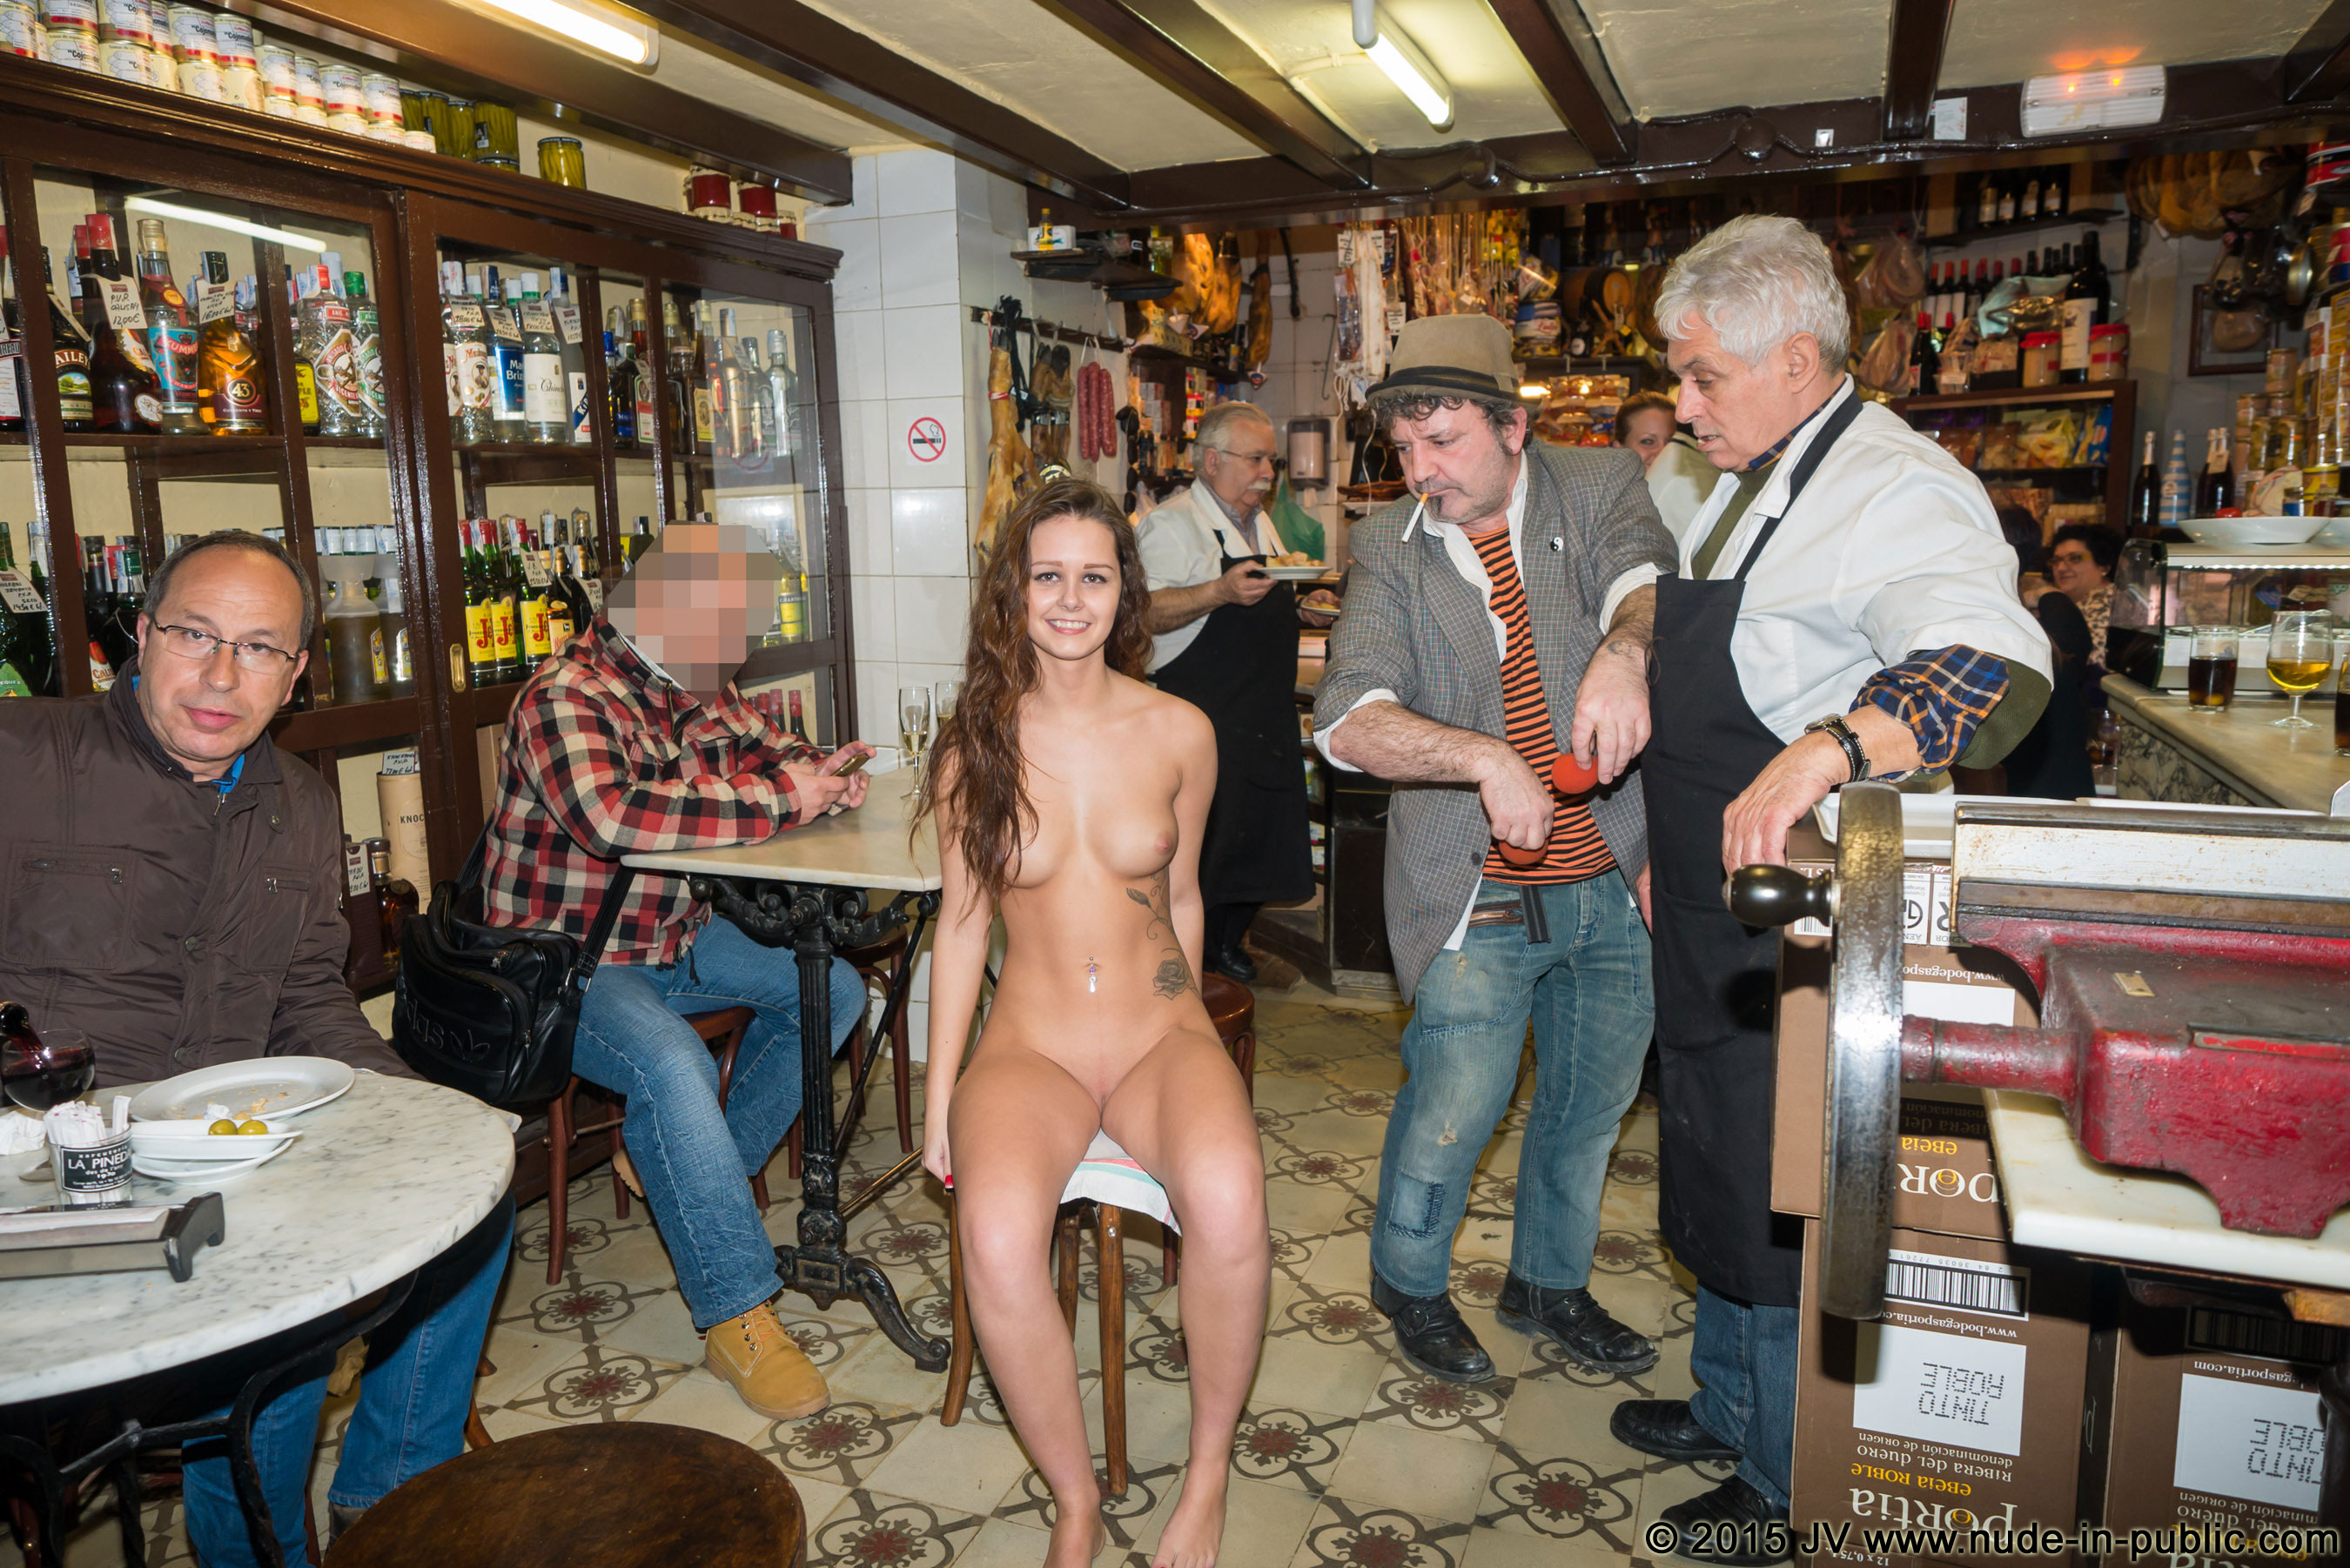 Naked in a pub